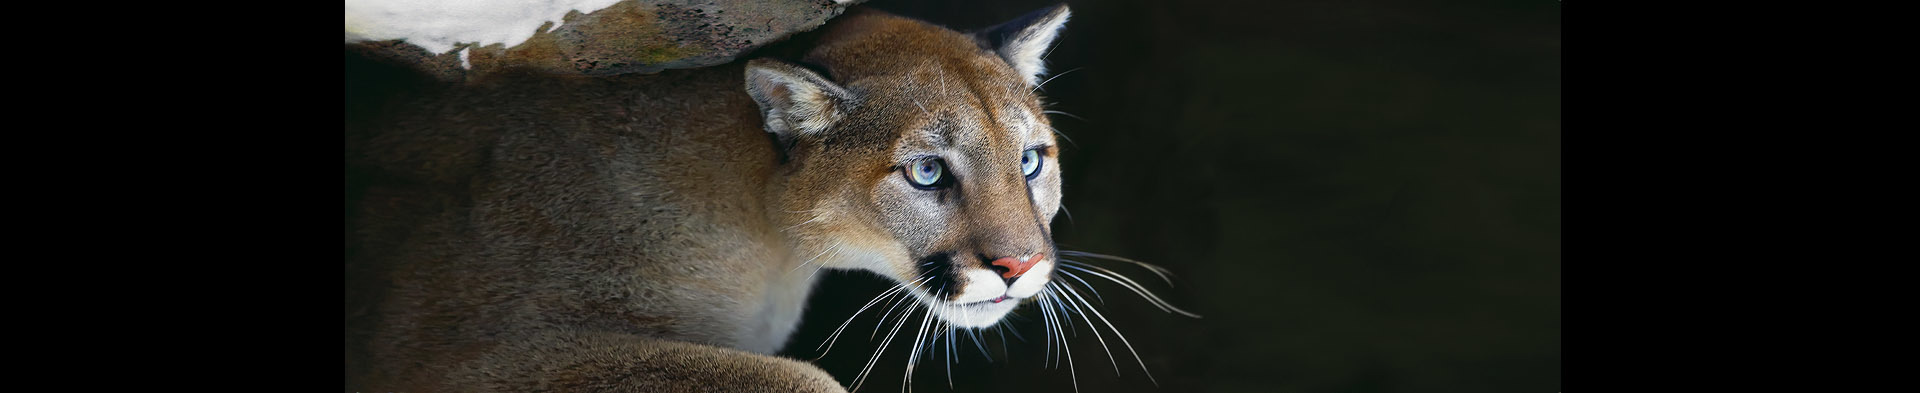 <div class='title'>           Puma         </div>                 <div class='description'>           Panoramic photo of a puma (cougar)         </div>